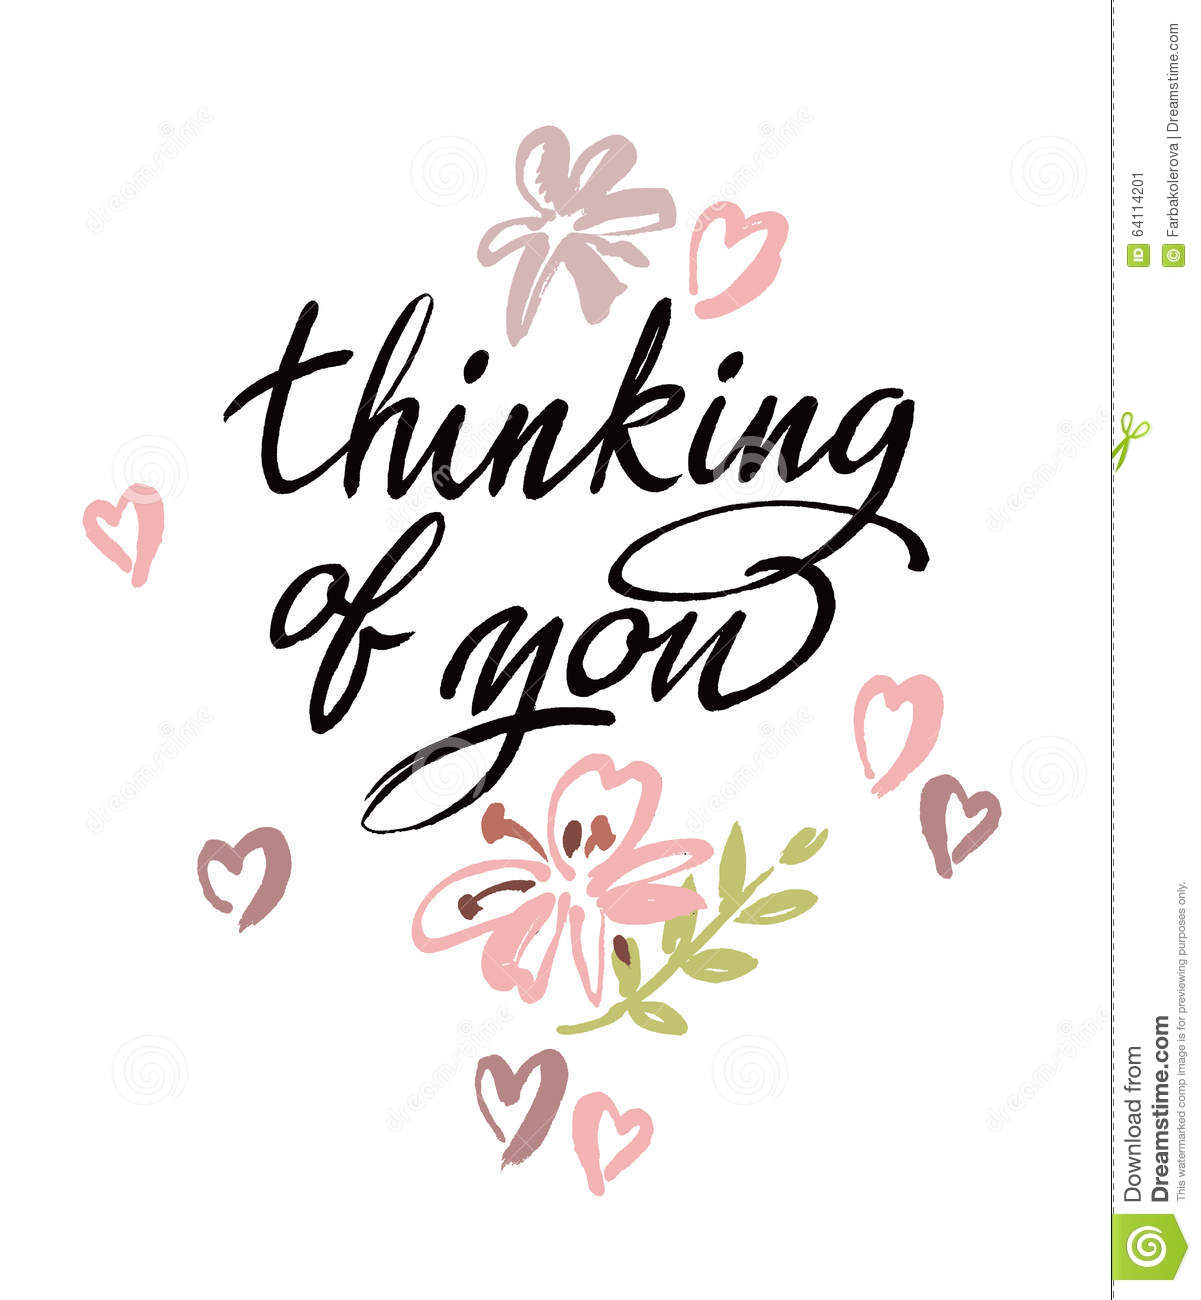 Thinking Of You. Vector Brush Calligraphy Stock Vector ...